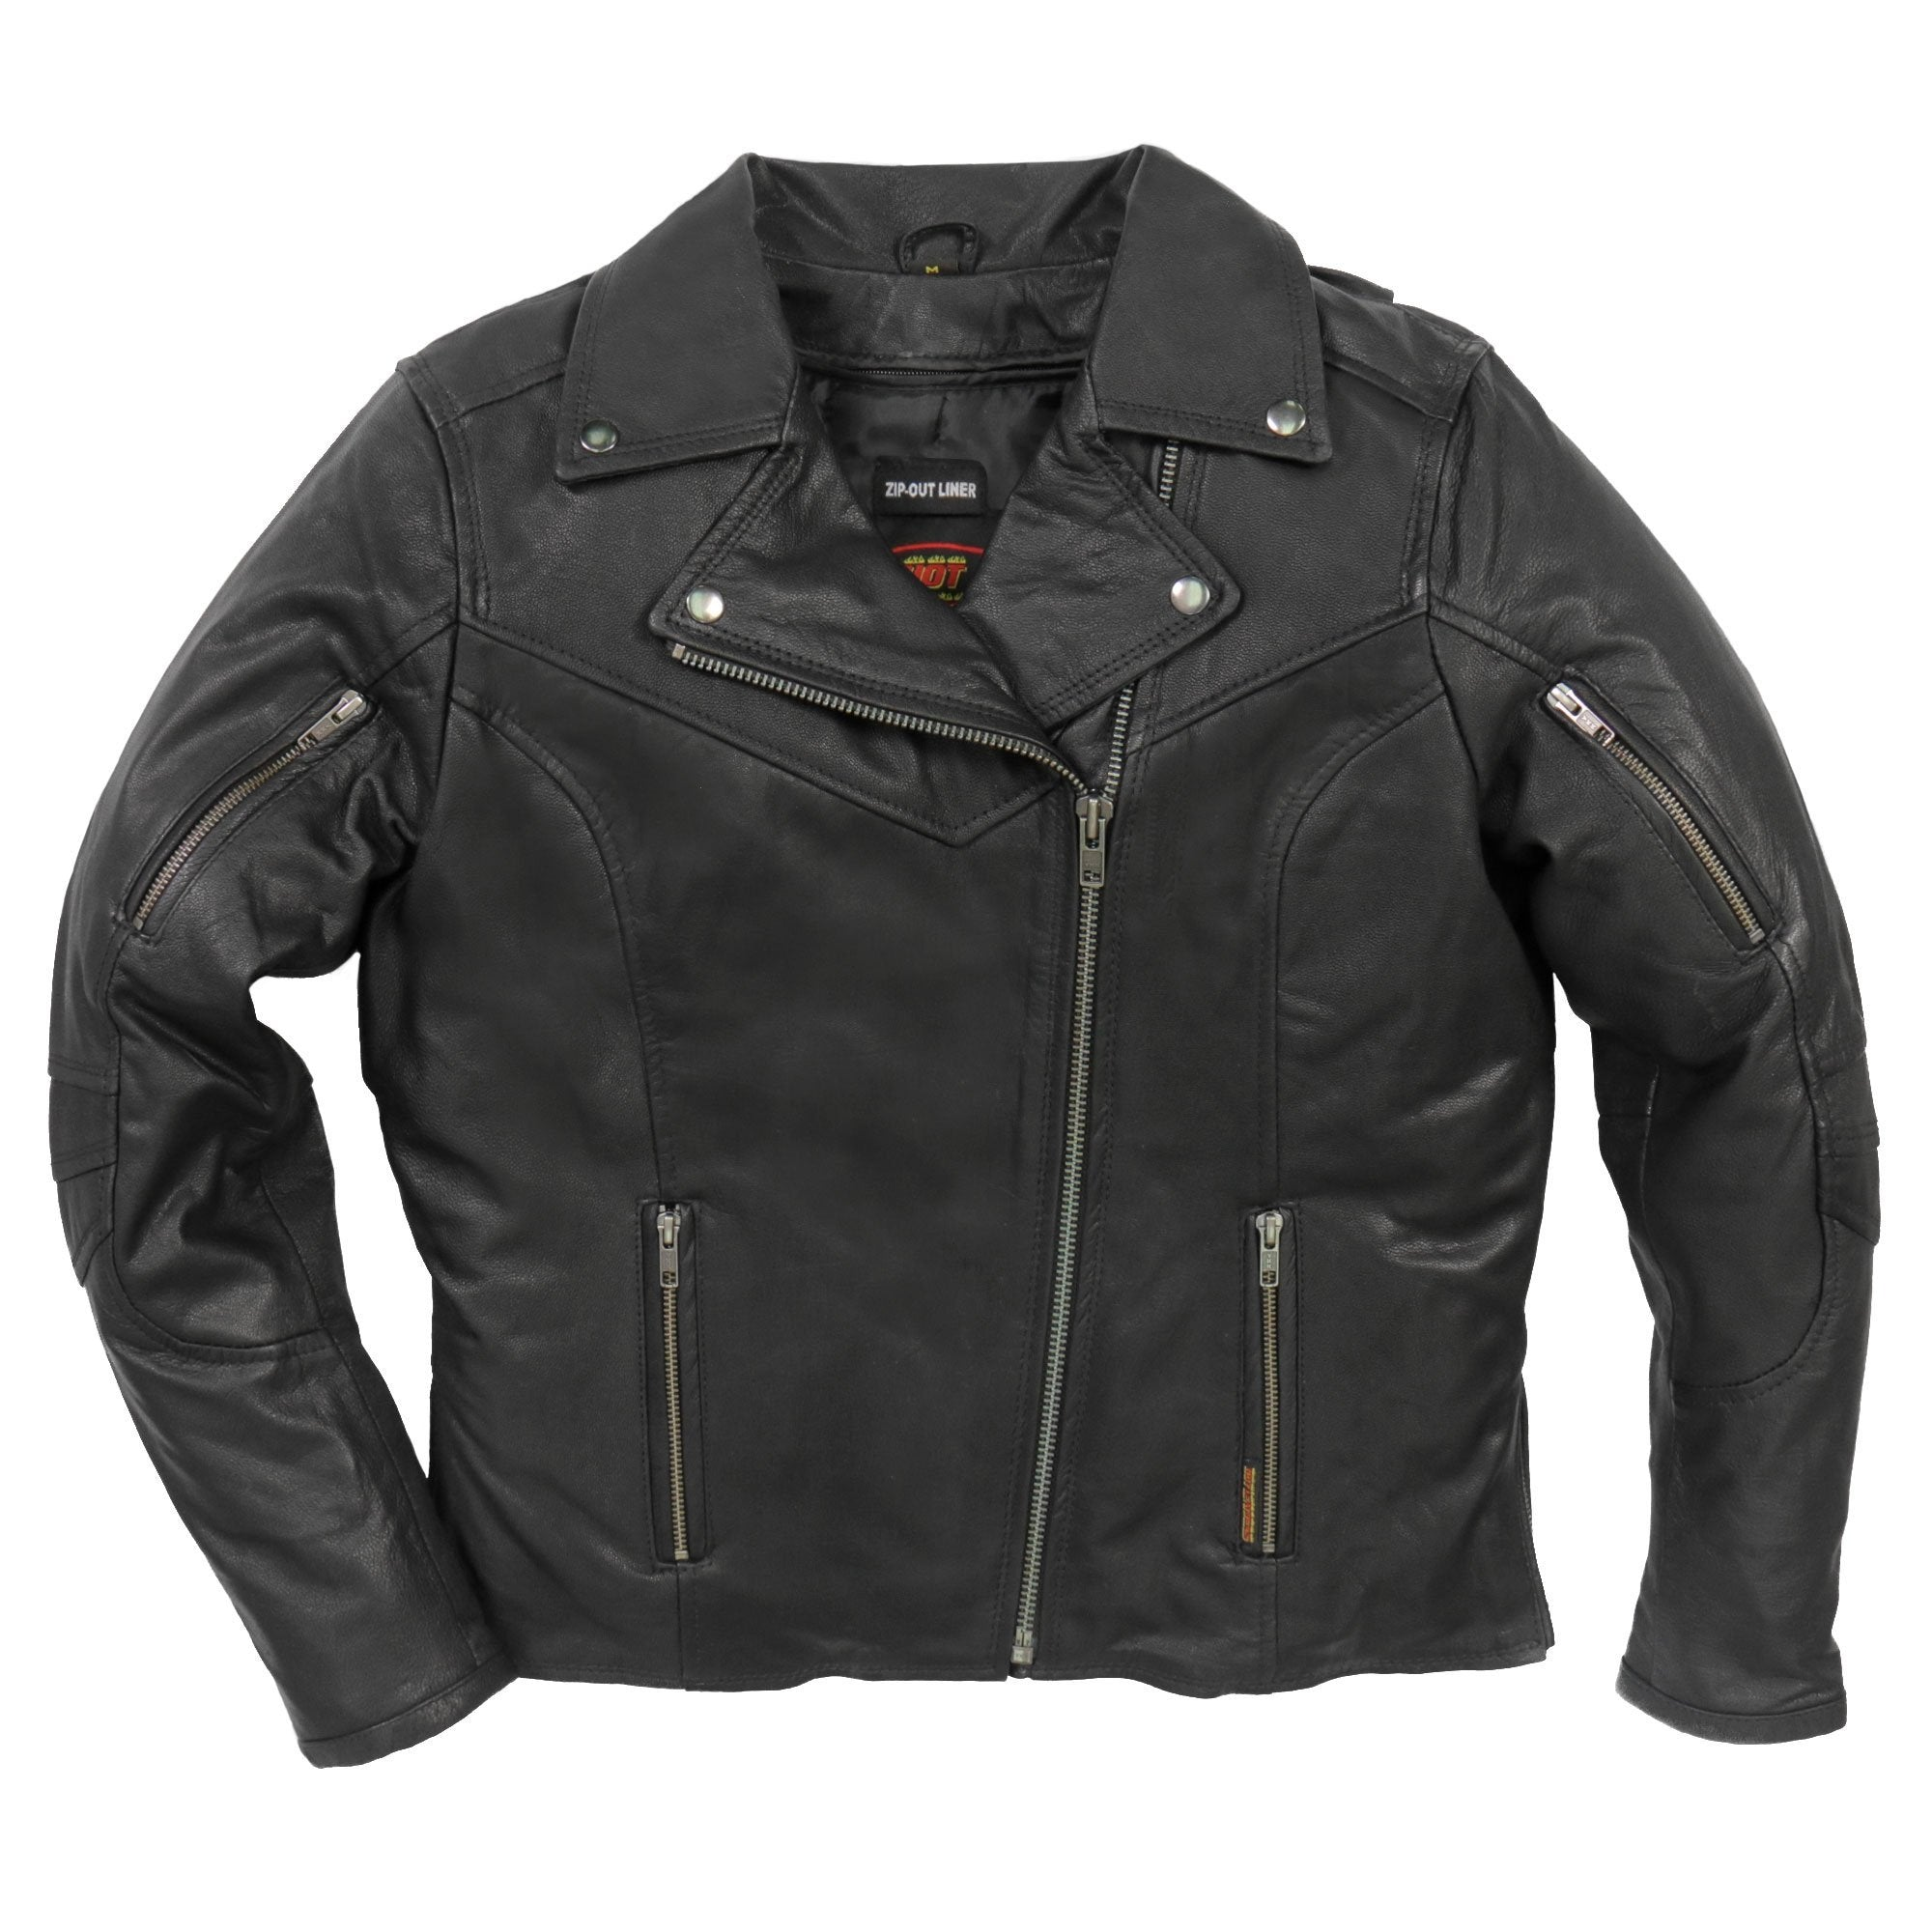 Hot Leathers JKL1029 Ladies Leather Carry Conceal Jacket with Vents